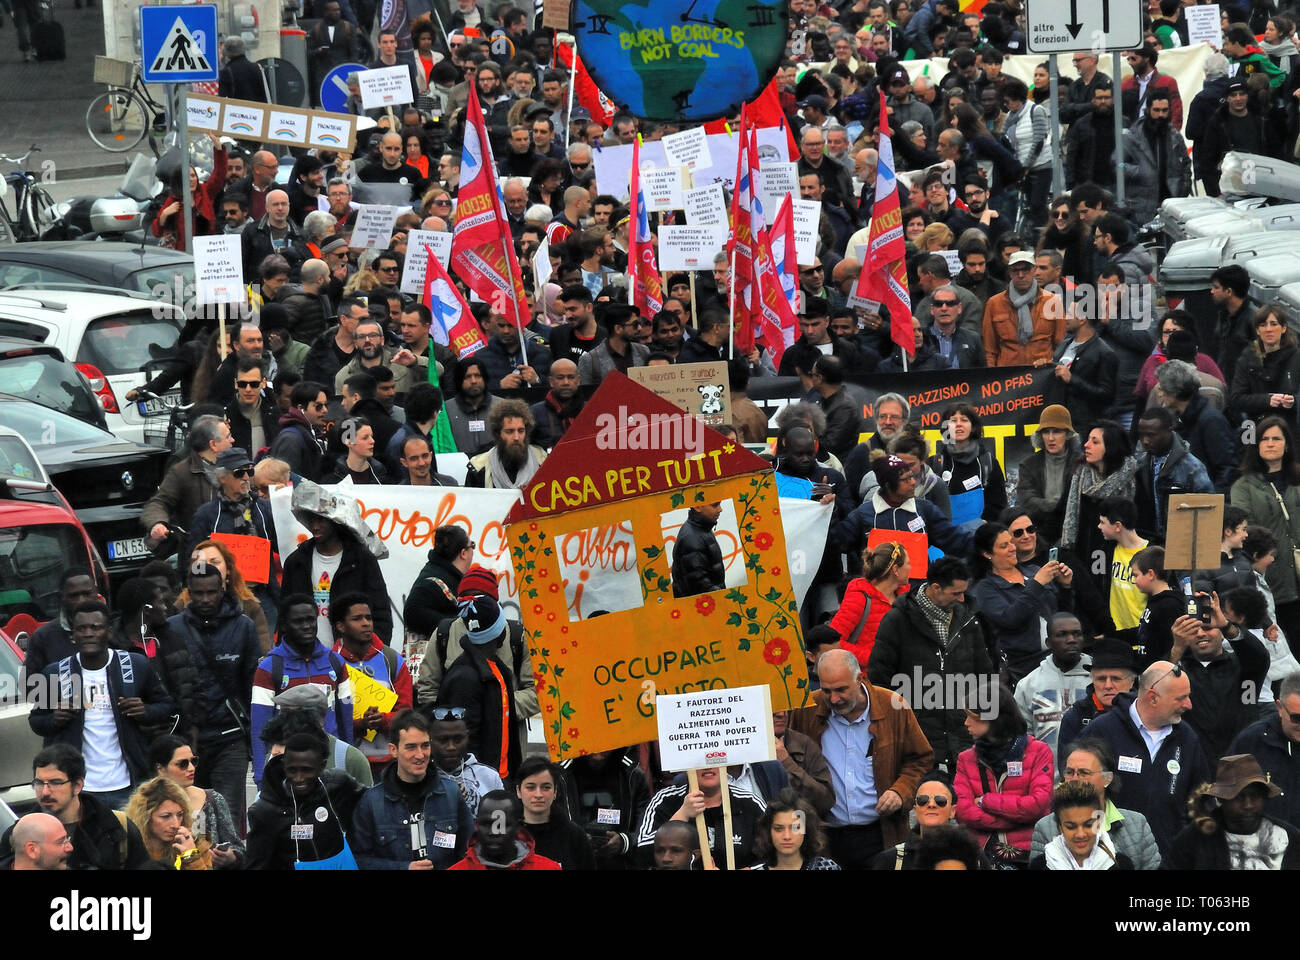 Padua, Italy, March 17th, 2019. Three thousand people demonstrated against racism, against the Salvini government, against sea rejections and for a policy of welcoming migrants. Credit: Ferdinando Piezzi/Alamy Live News - Stock Image